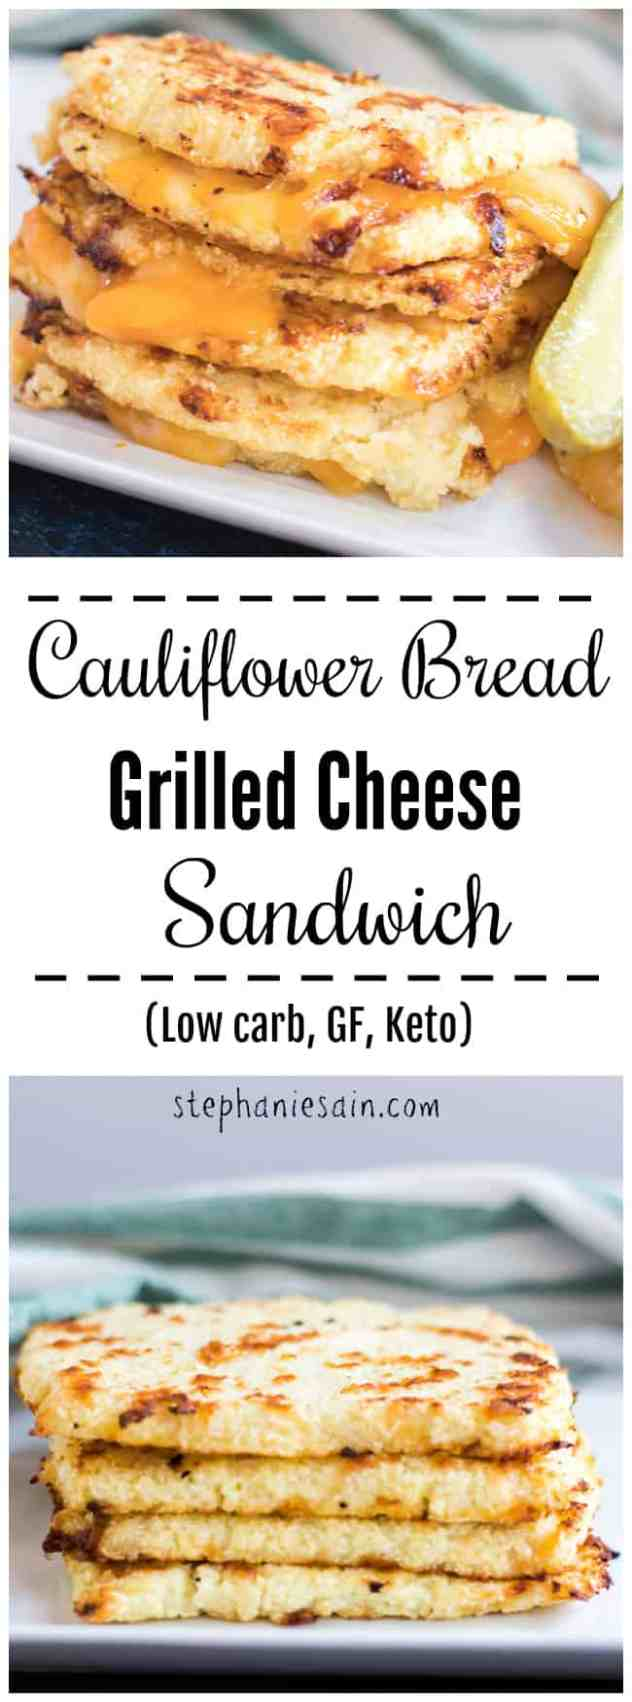 This Cauliflower Bread Grilled Cheese Sandwich is a healthier, lower carb option for a classic grilled cheese. Loaded with melty gooey cheese all slathered between bread made from cauliflower. Gluten Free, Low carb, & Keto.